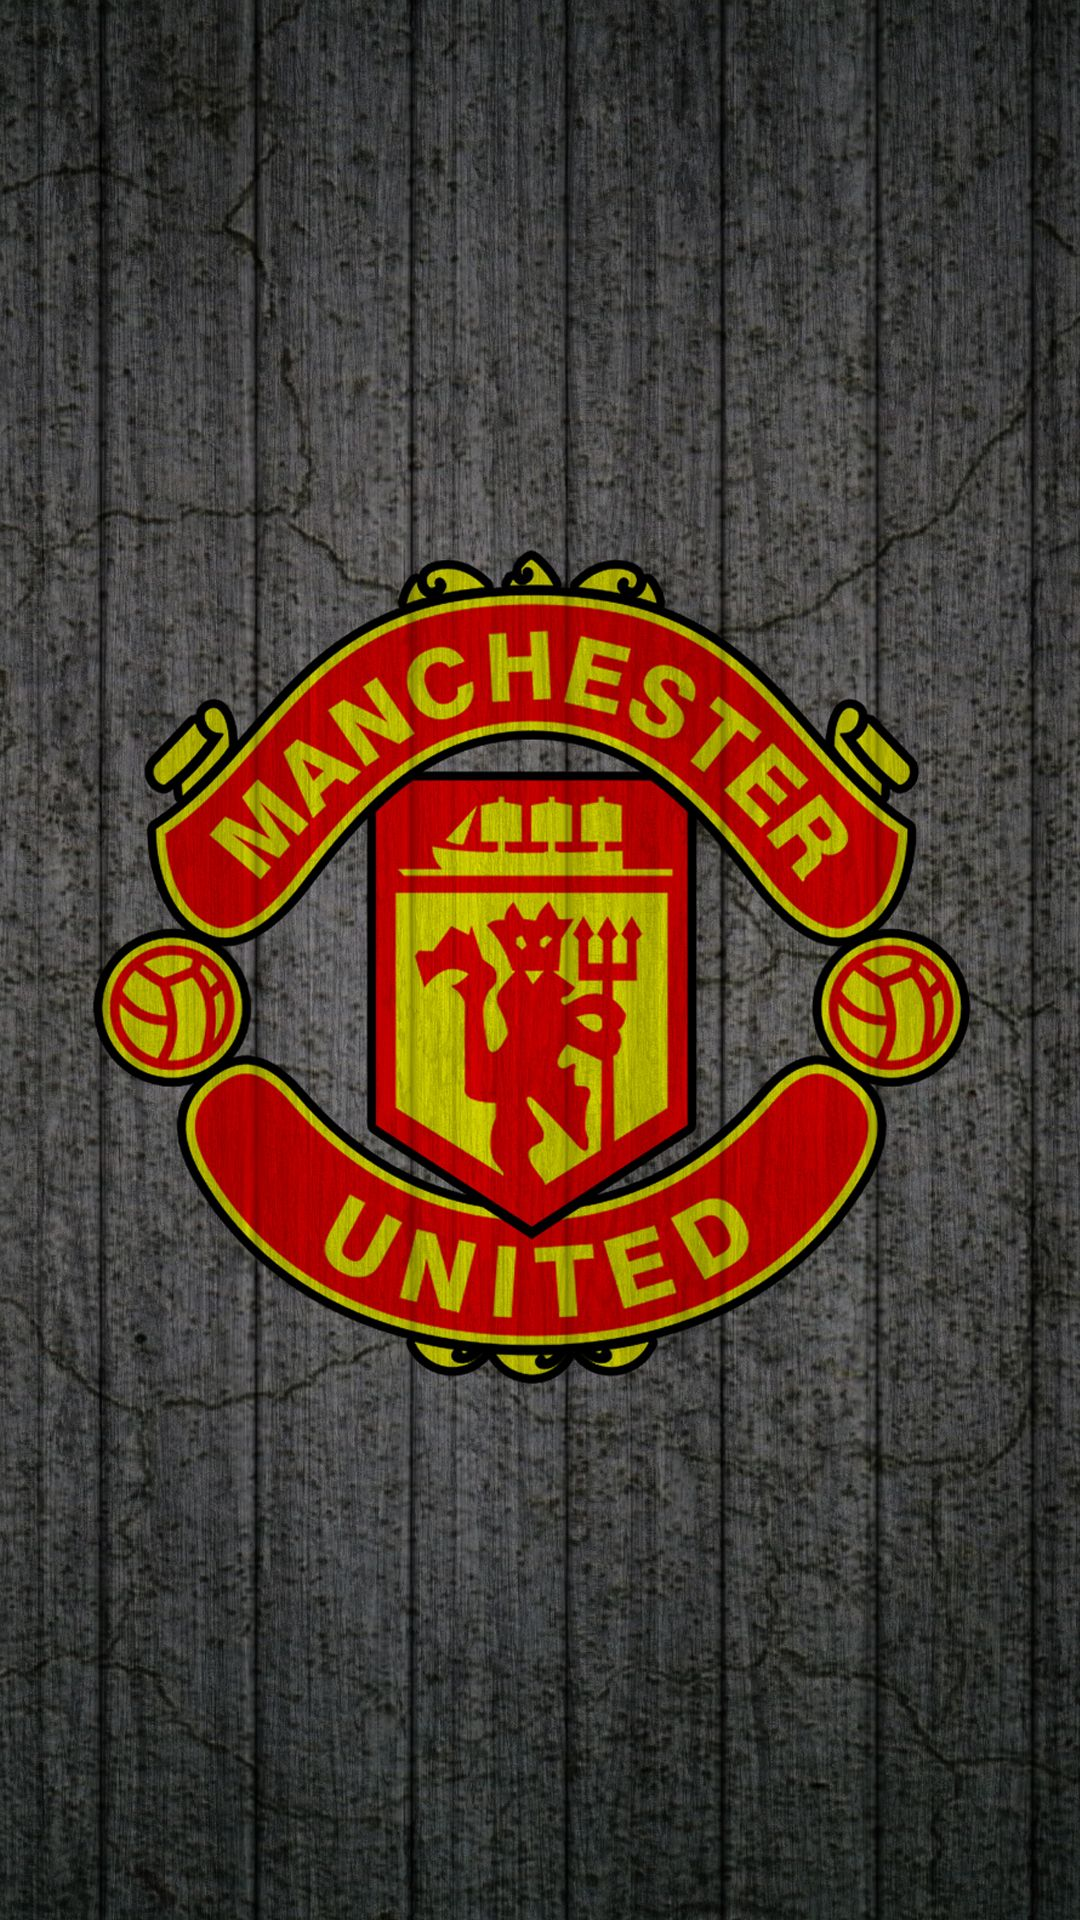 Apple IPhone 6 Plus HD Wallpaper – Manchester United Logo